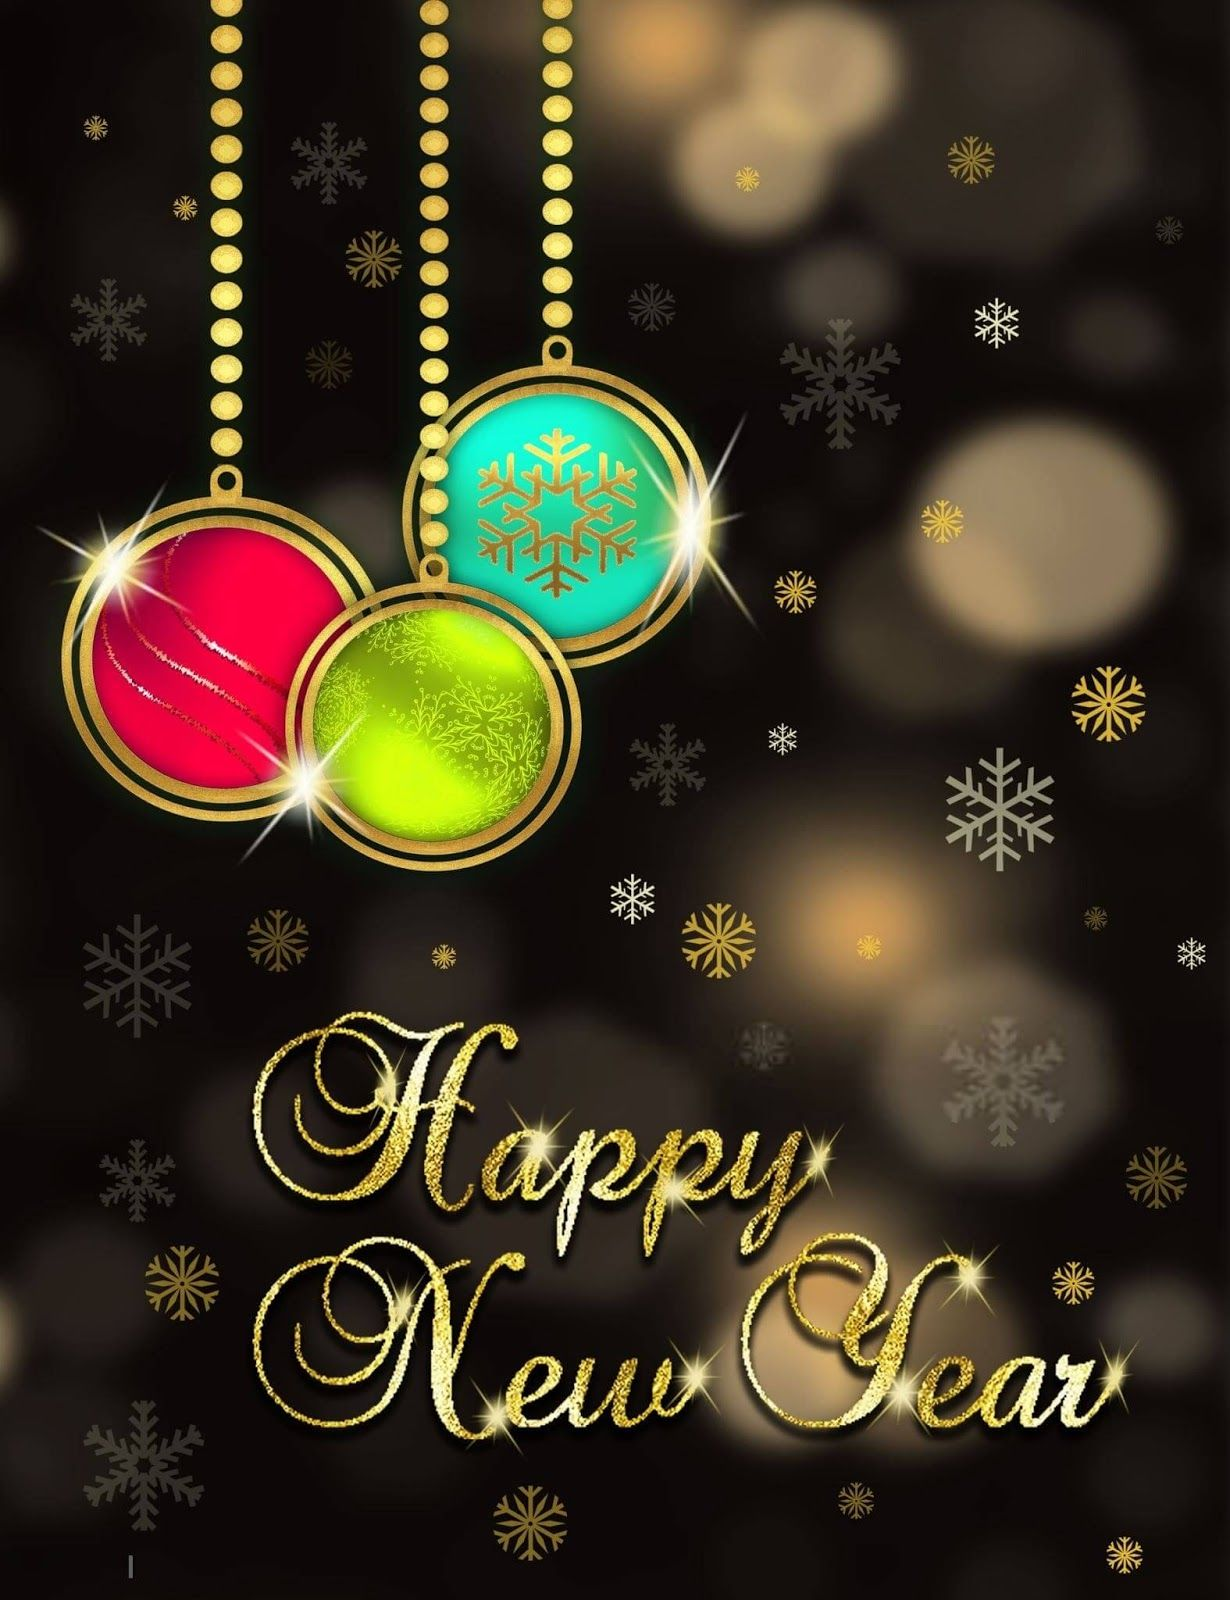 new year 2019 hd wallpaper free download